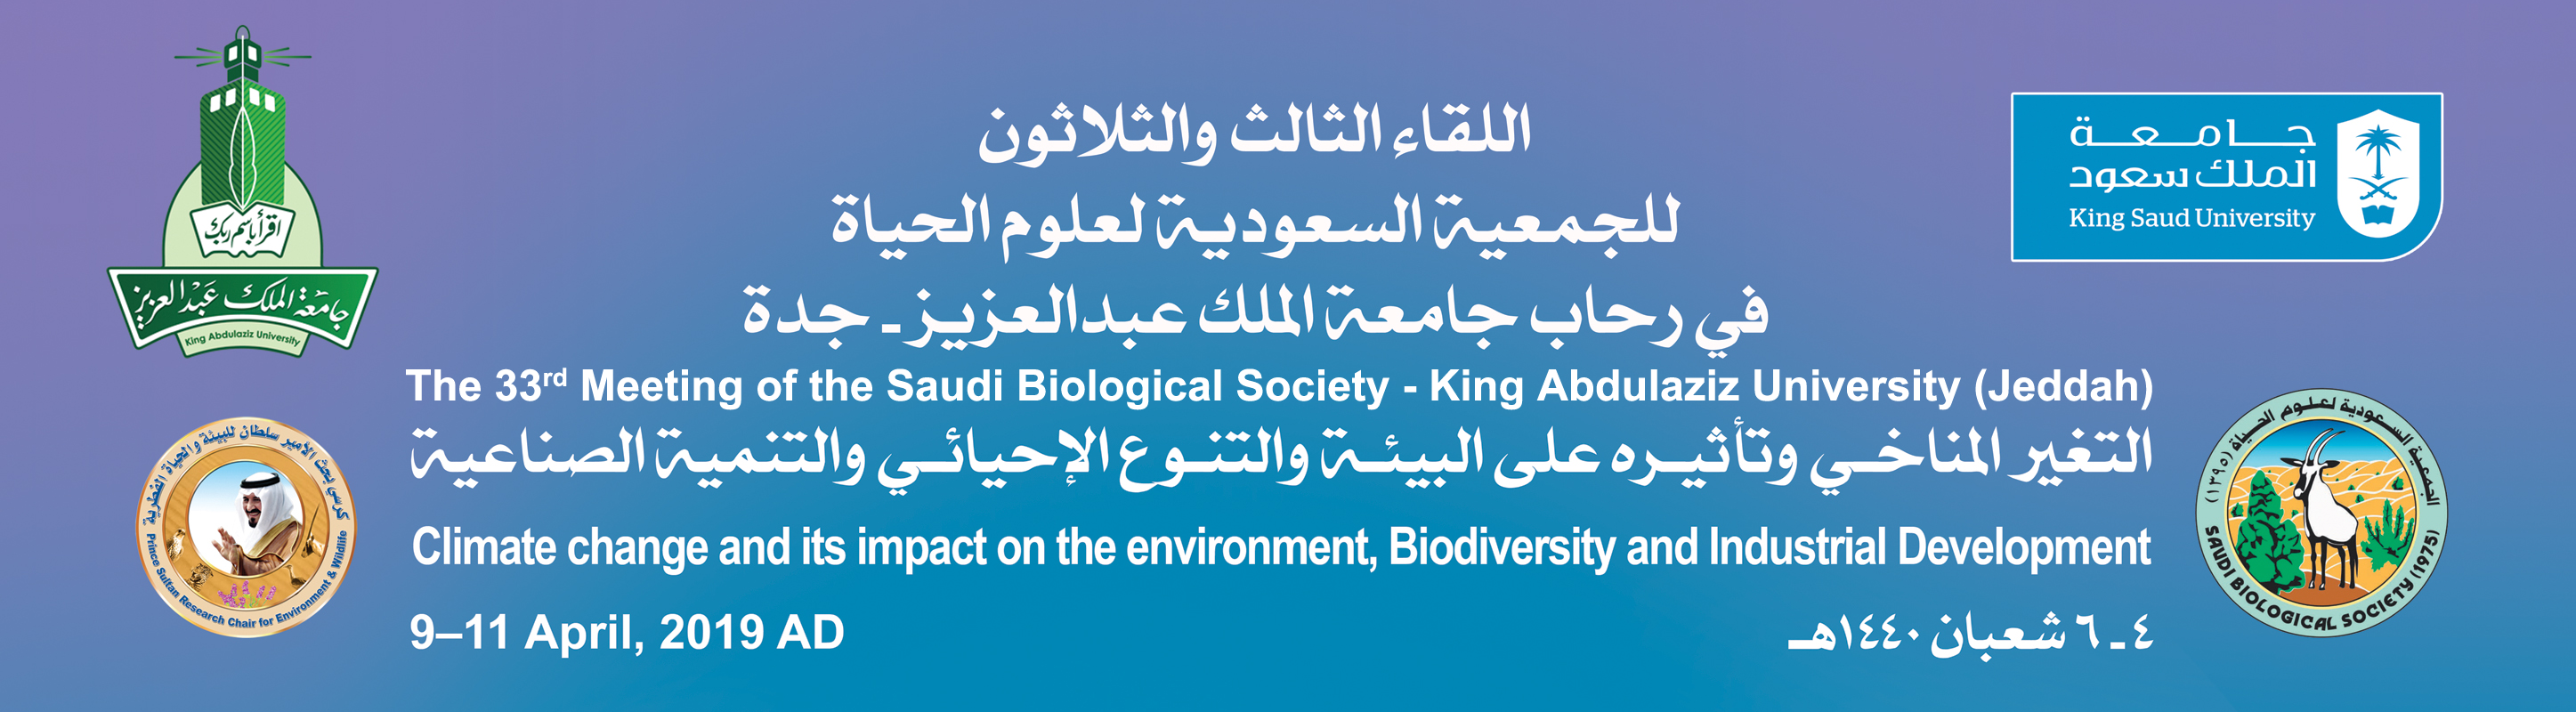 "Invitation to Participate - in The 33rd Meeting ""Climate Change and..."